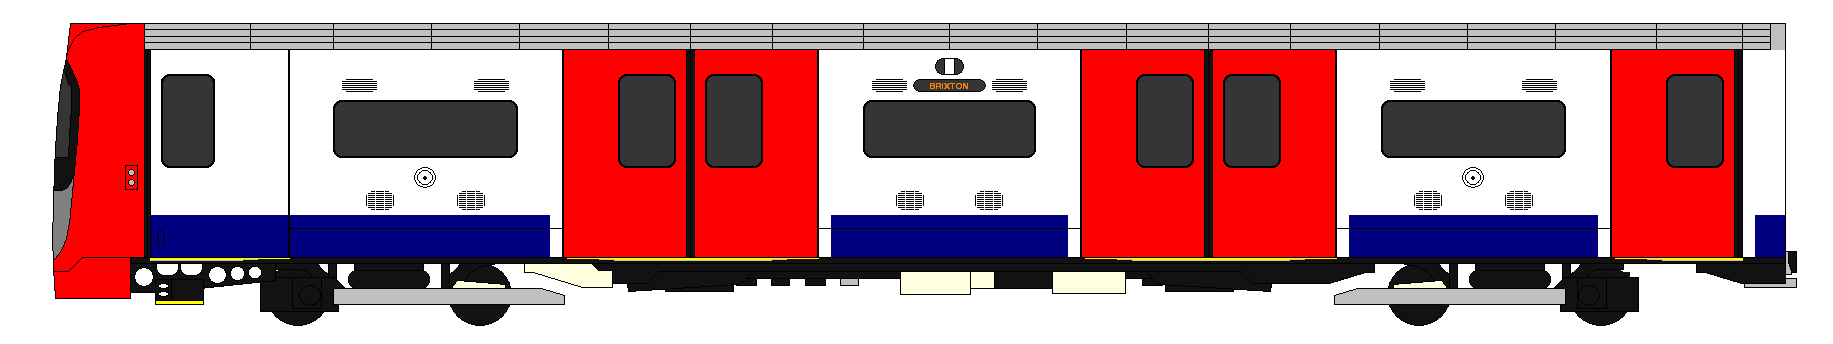 1833x344 Collection Of Underground Train Clipart High Quality, Free